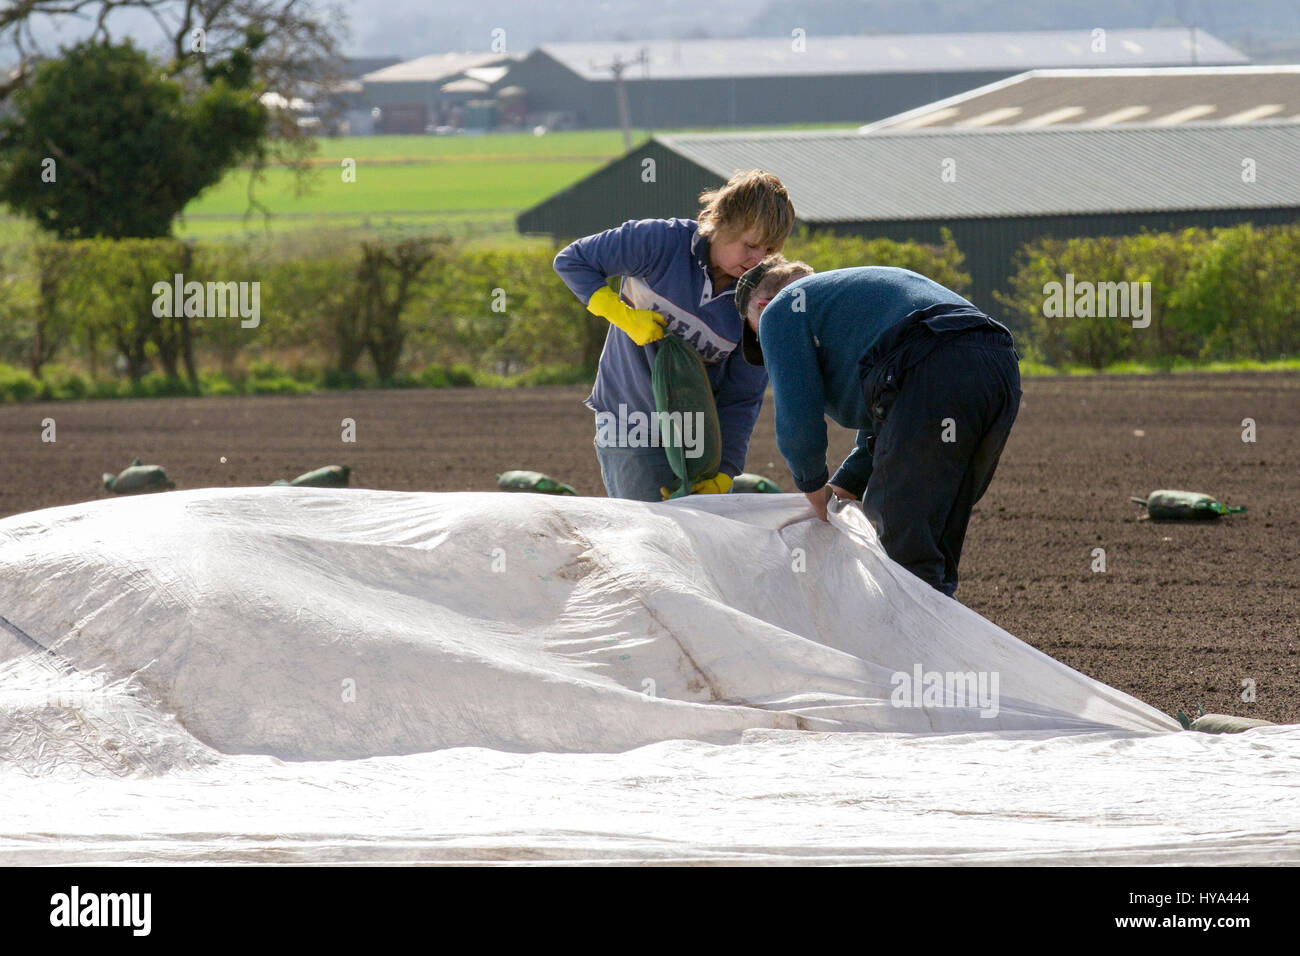 Burscough, Lancashire, UK. UK Weather. 3rd April, 2017. Sunny with light winds enable newly planted crops to be - Stock Image